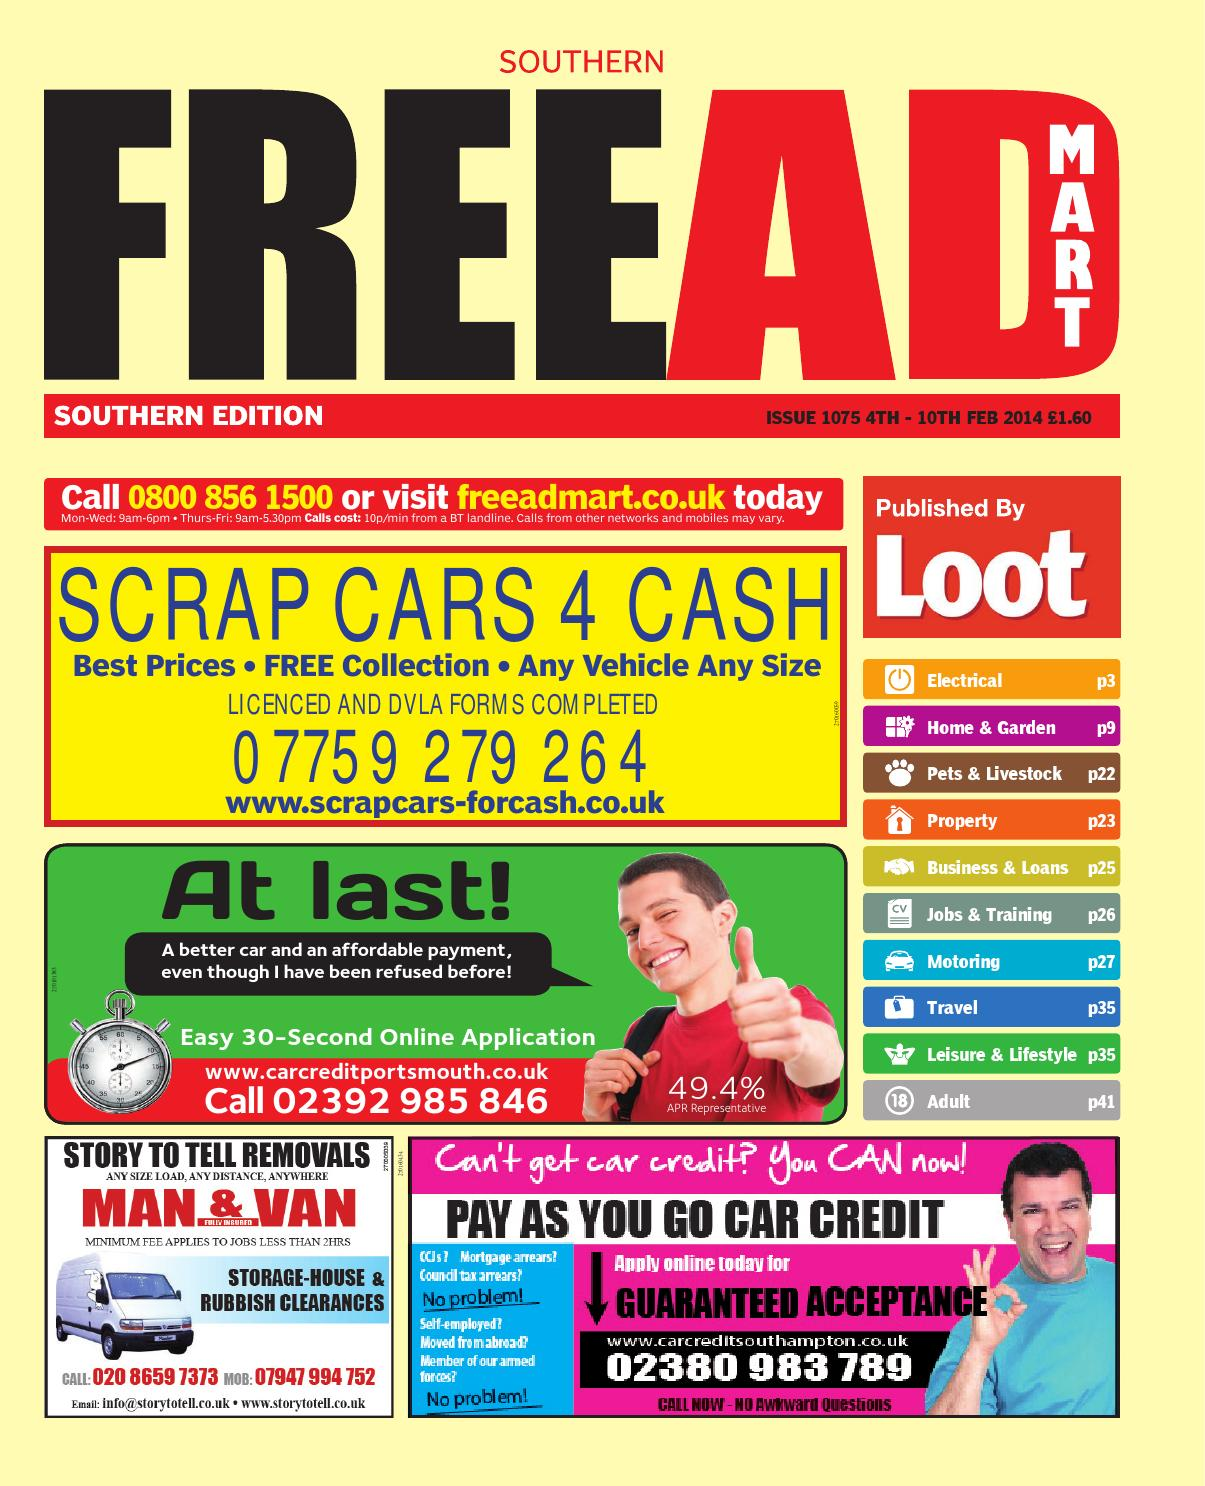 Free ad mart southern 4th february 2014 by loot issuu fandeluxe Gallery